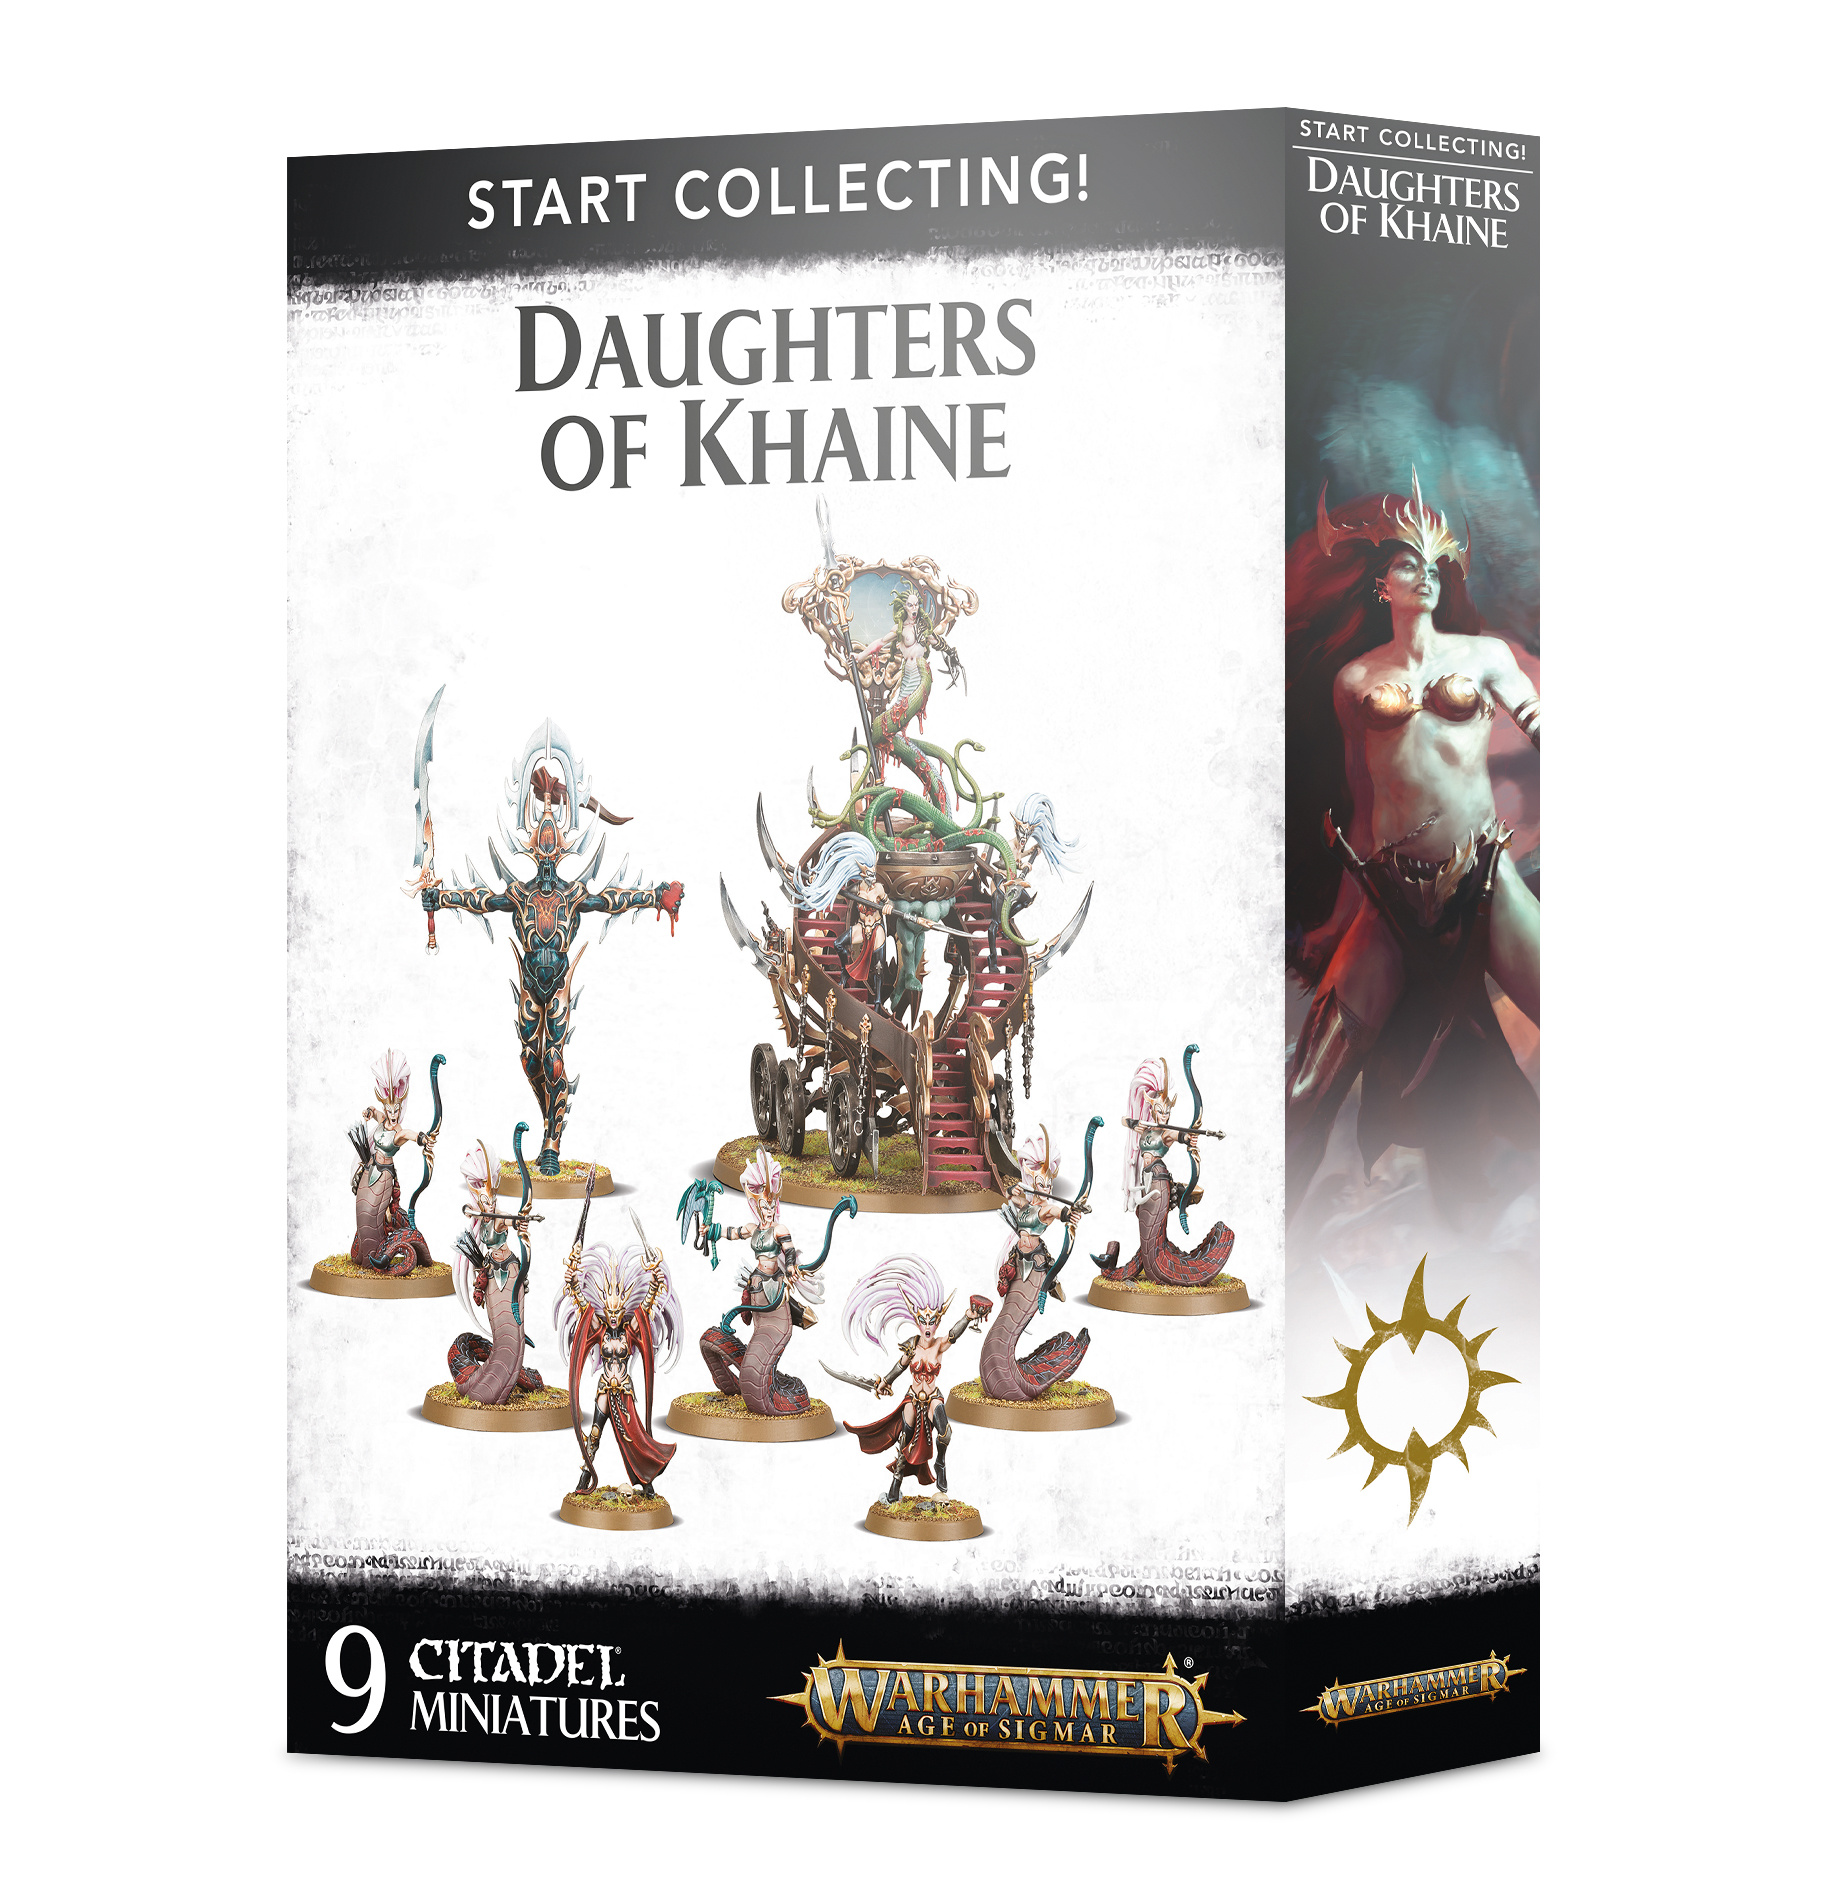 Warhammer Age of Sigmar: Daughters of Khaine: Start Collecting!